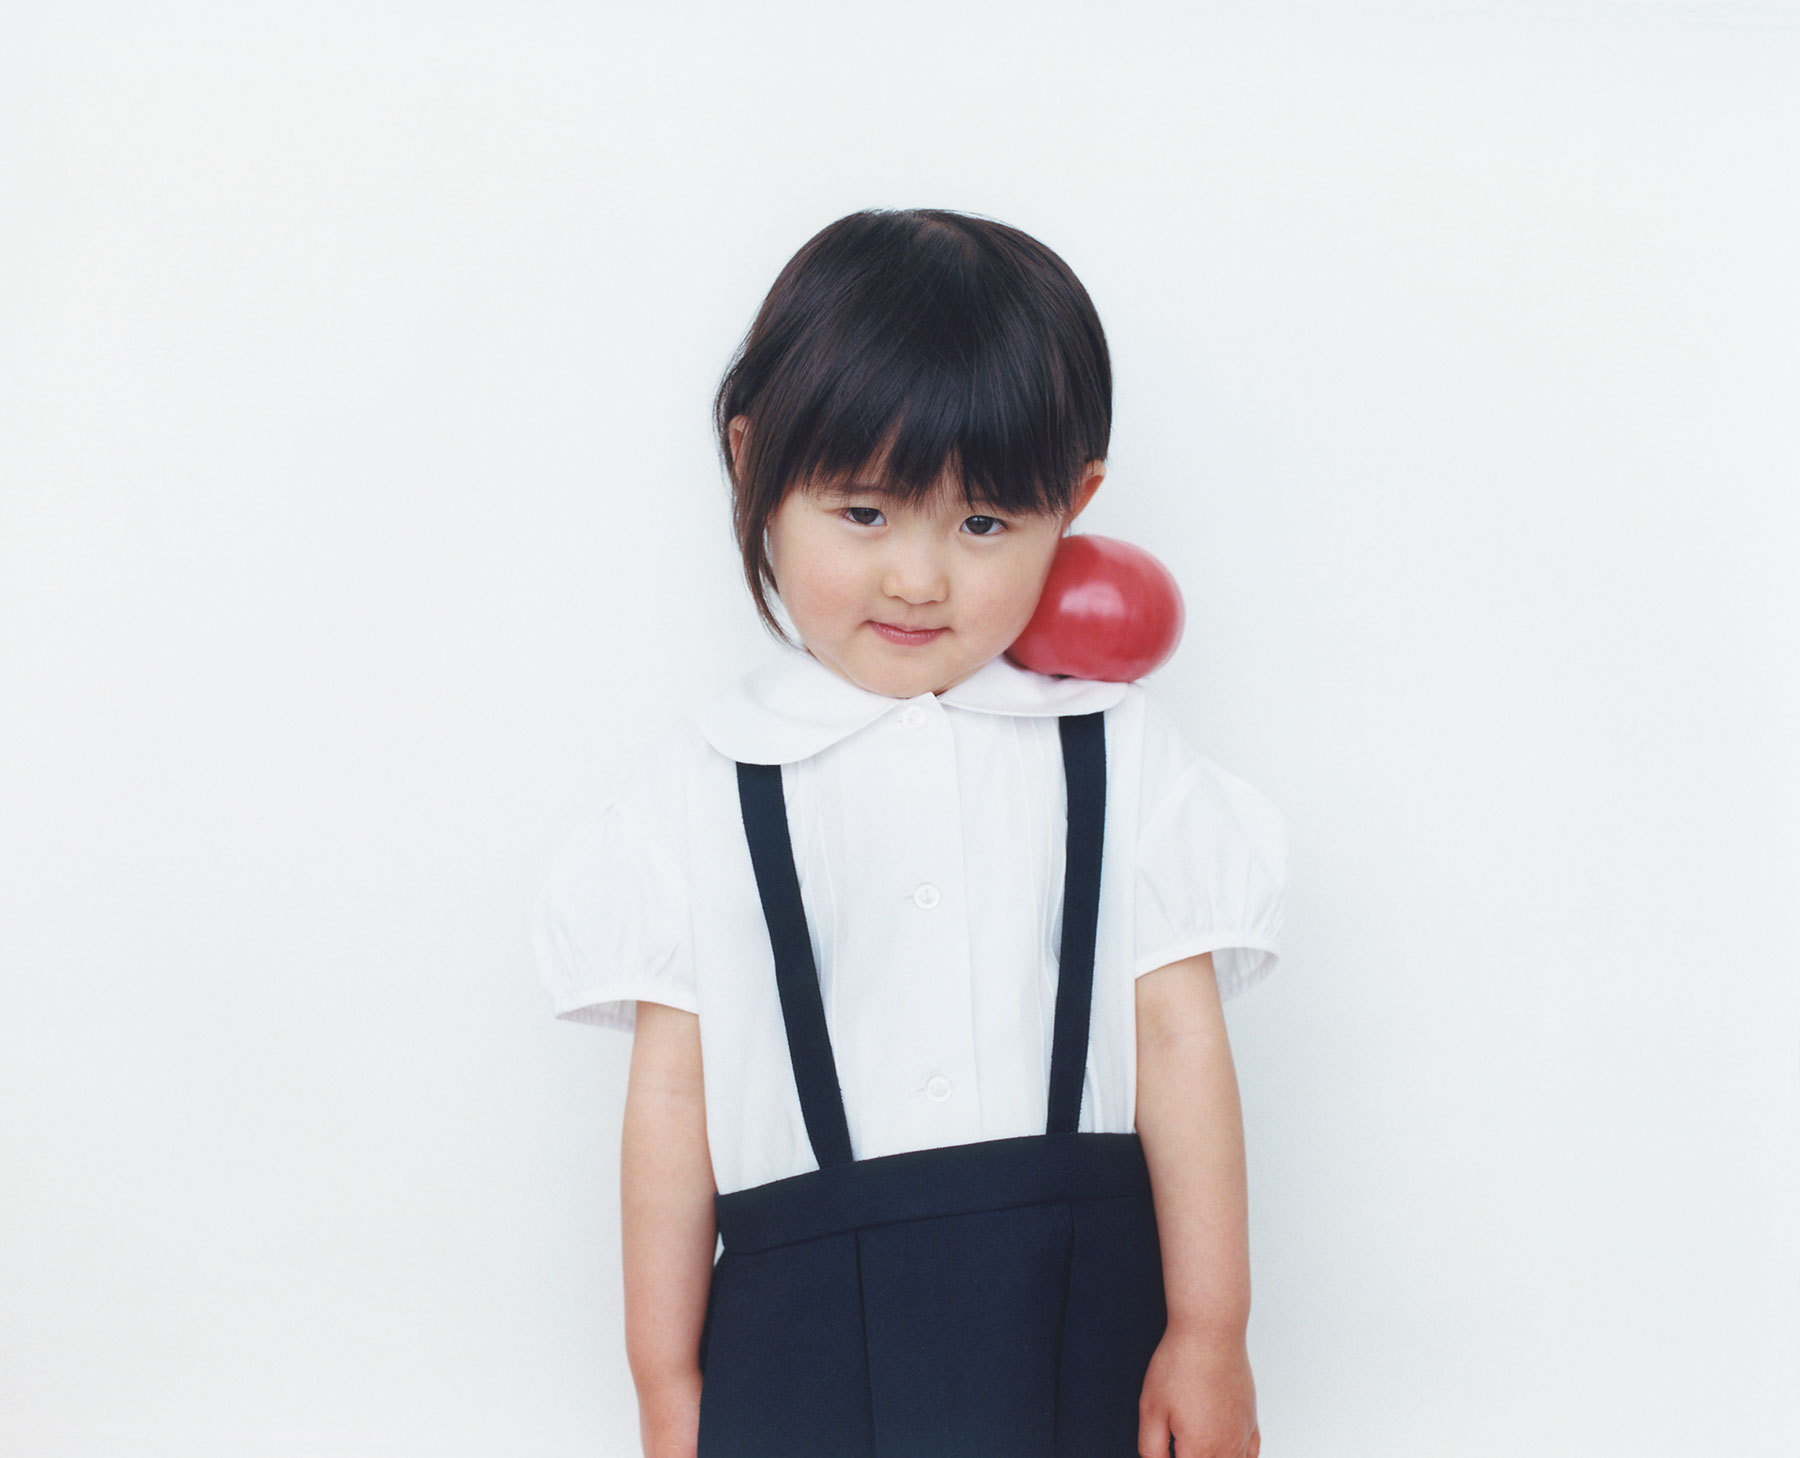 Osamu Yokonami,  1000 Children: Red Tomato No. 6 , 2010-2013  Digital pigment print, 895 x 1105 mm (approx. 35 x 43.5 in), edition of 5; 146 x 168 mm (approx. 5.75 x 6.6 in), edition of 10   Inquire